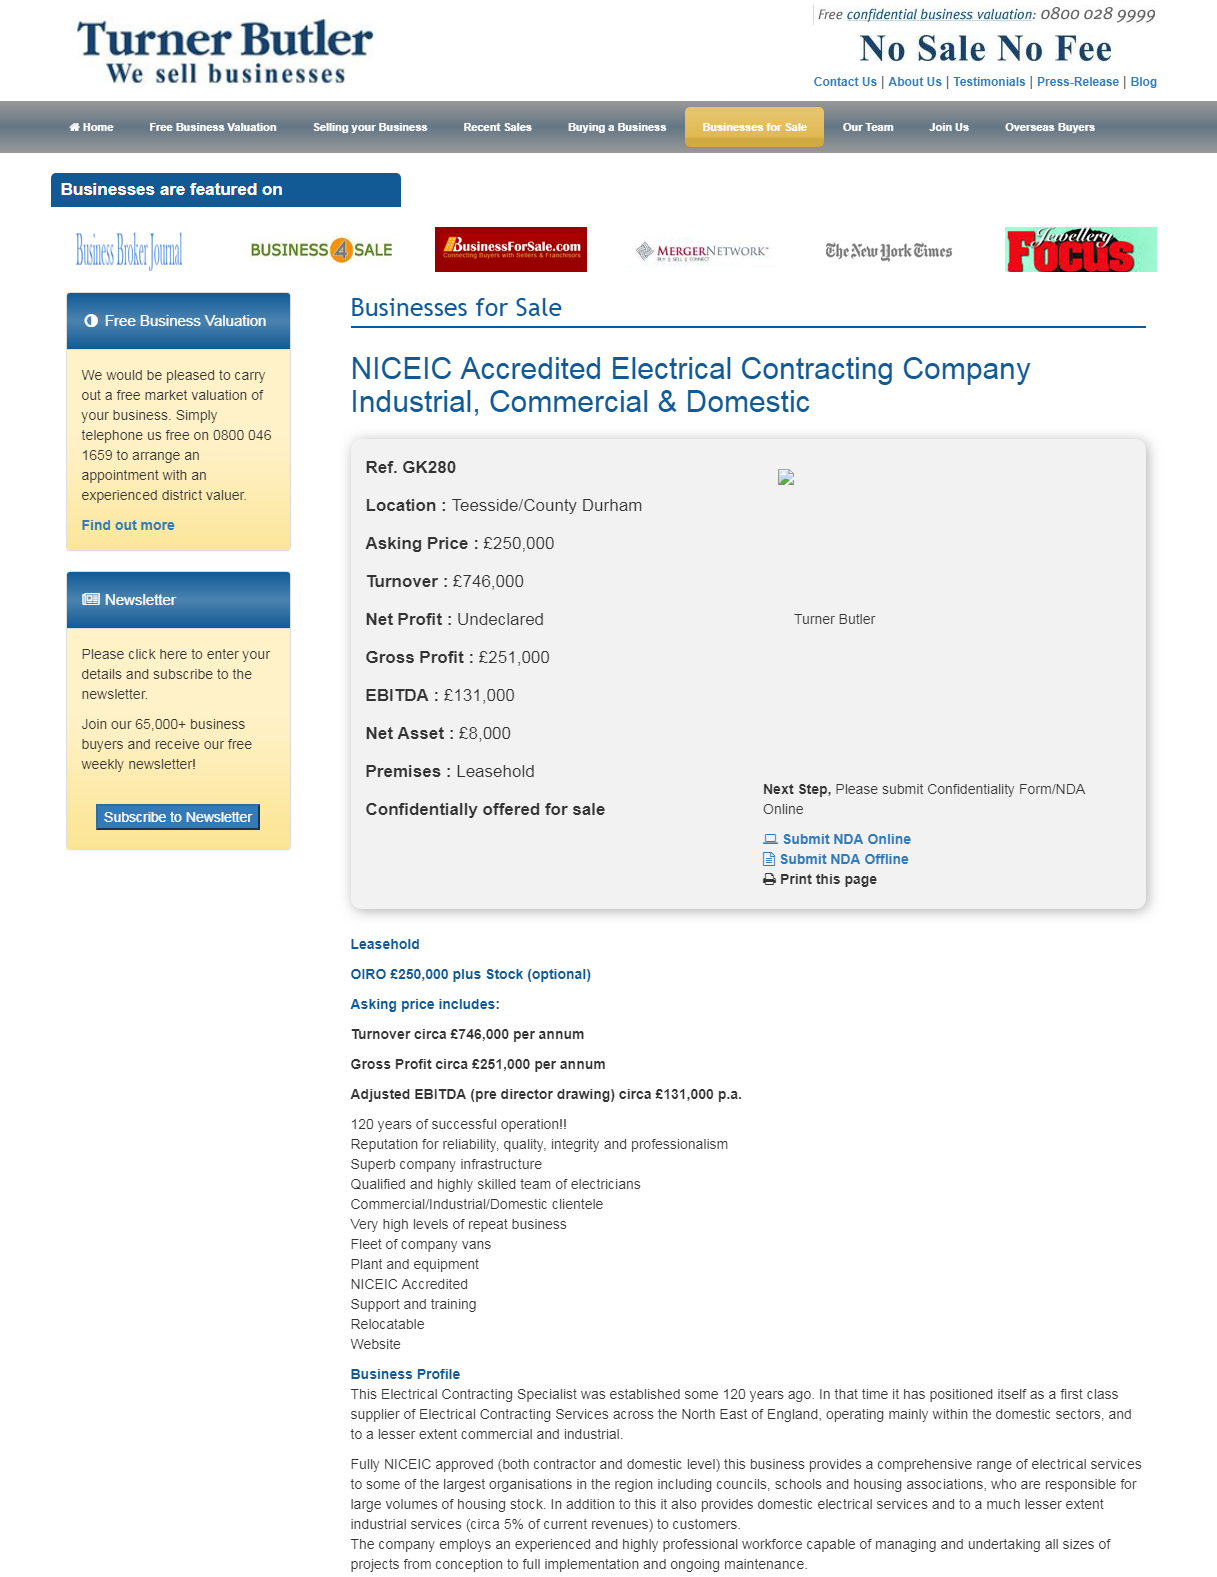 Business For Sale Niceic Accredited Electrical Contracting Company